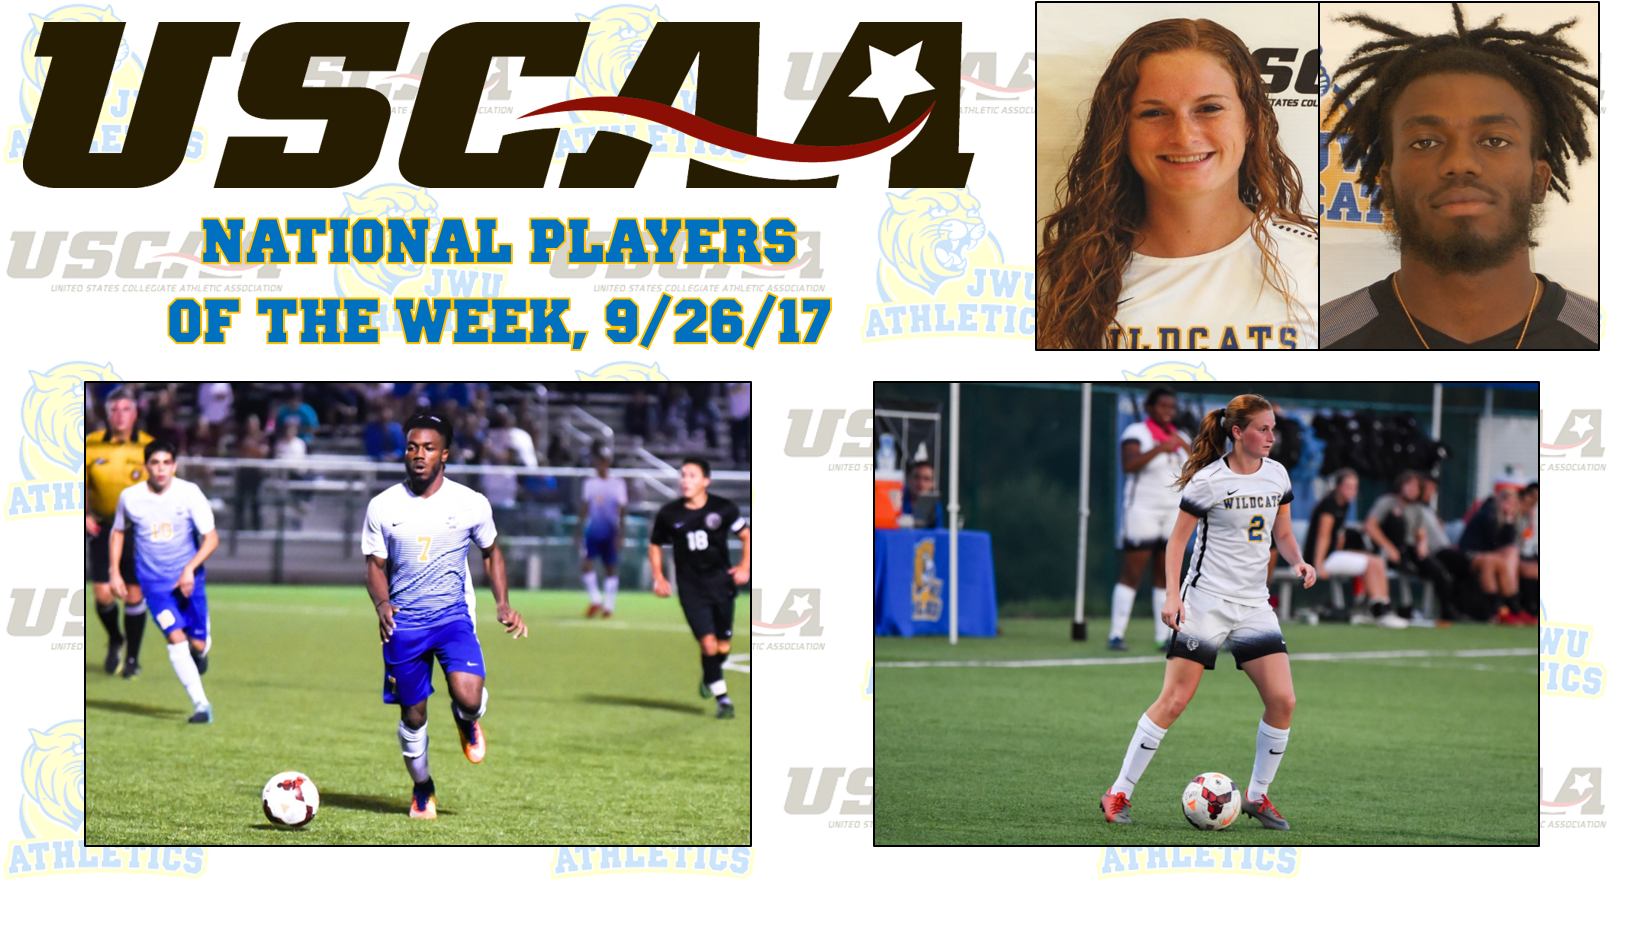 Jackson, Doyle Earn National Player of the Week Honors